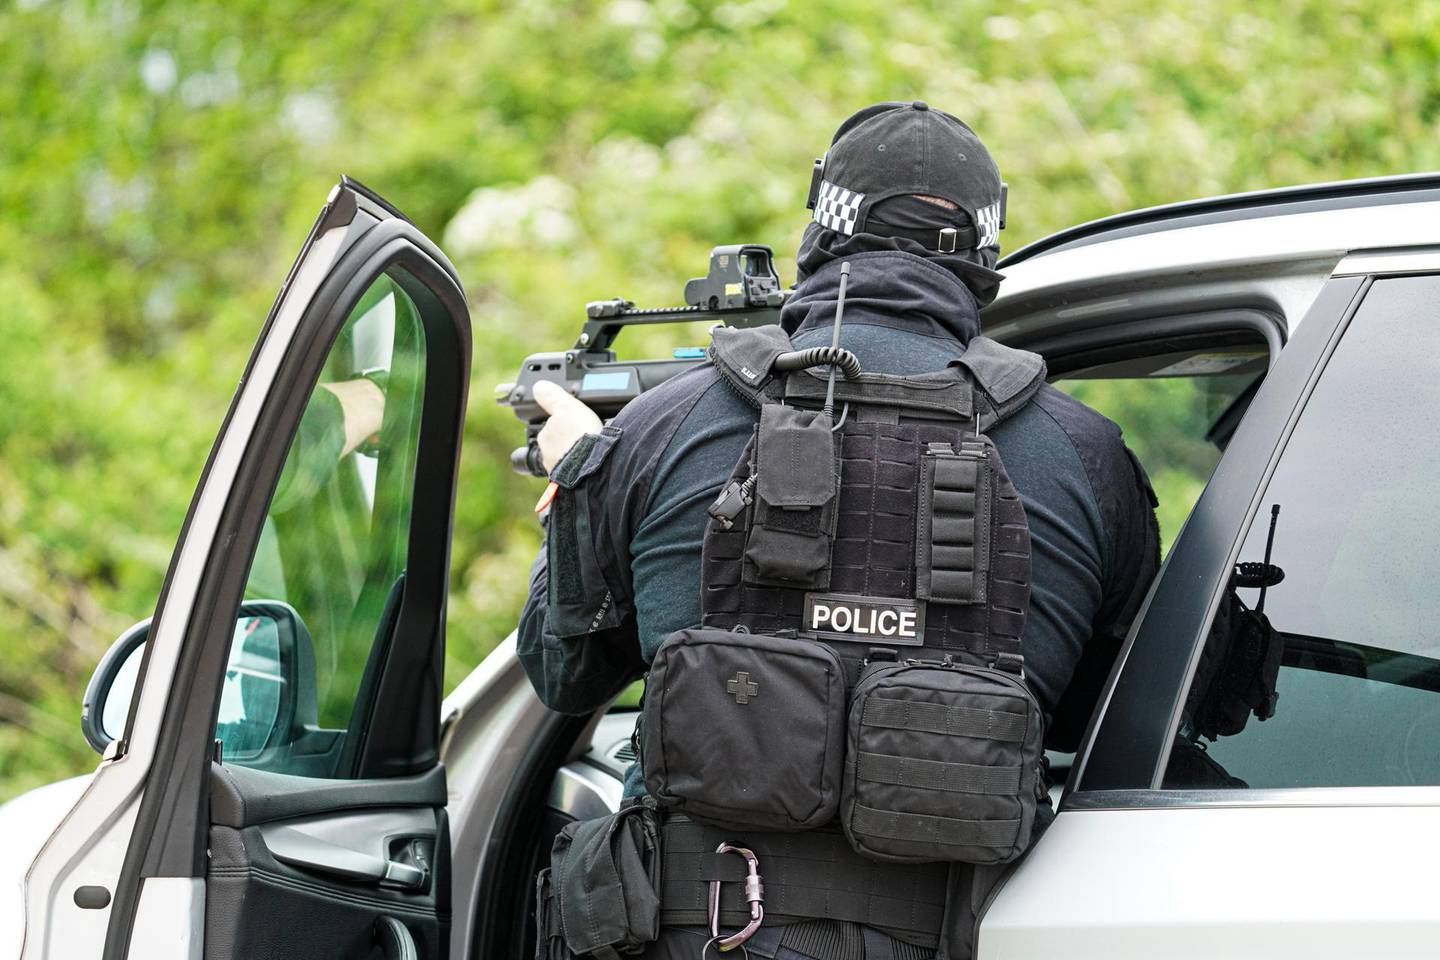 EXETER, ENGLAND - MAY 21: Police officers demonstrate armed stop and arrest techniques on a driver during a demonstration organised by Devon And Cornwall Police to illustrate the skills they may have to draw upon on order to police the forthcoming G7 Summit in Cornwall, on May 21, 2021 in Exeter, England. A wide variety of specially trained police officers will be ready to support their colleagues depending on the activities of protesters, activists and others who may seek to cause public disruption during the event. (Photo by Hugh Hastings/Getty Images)